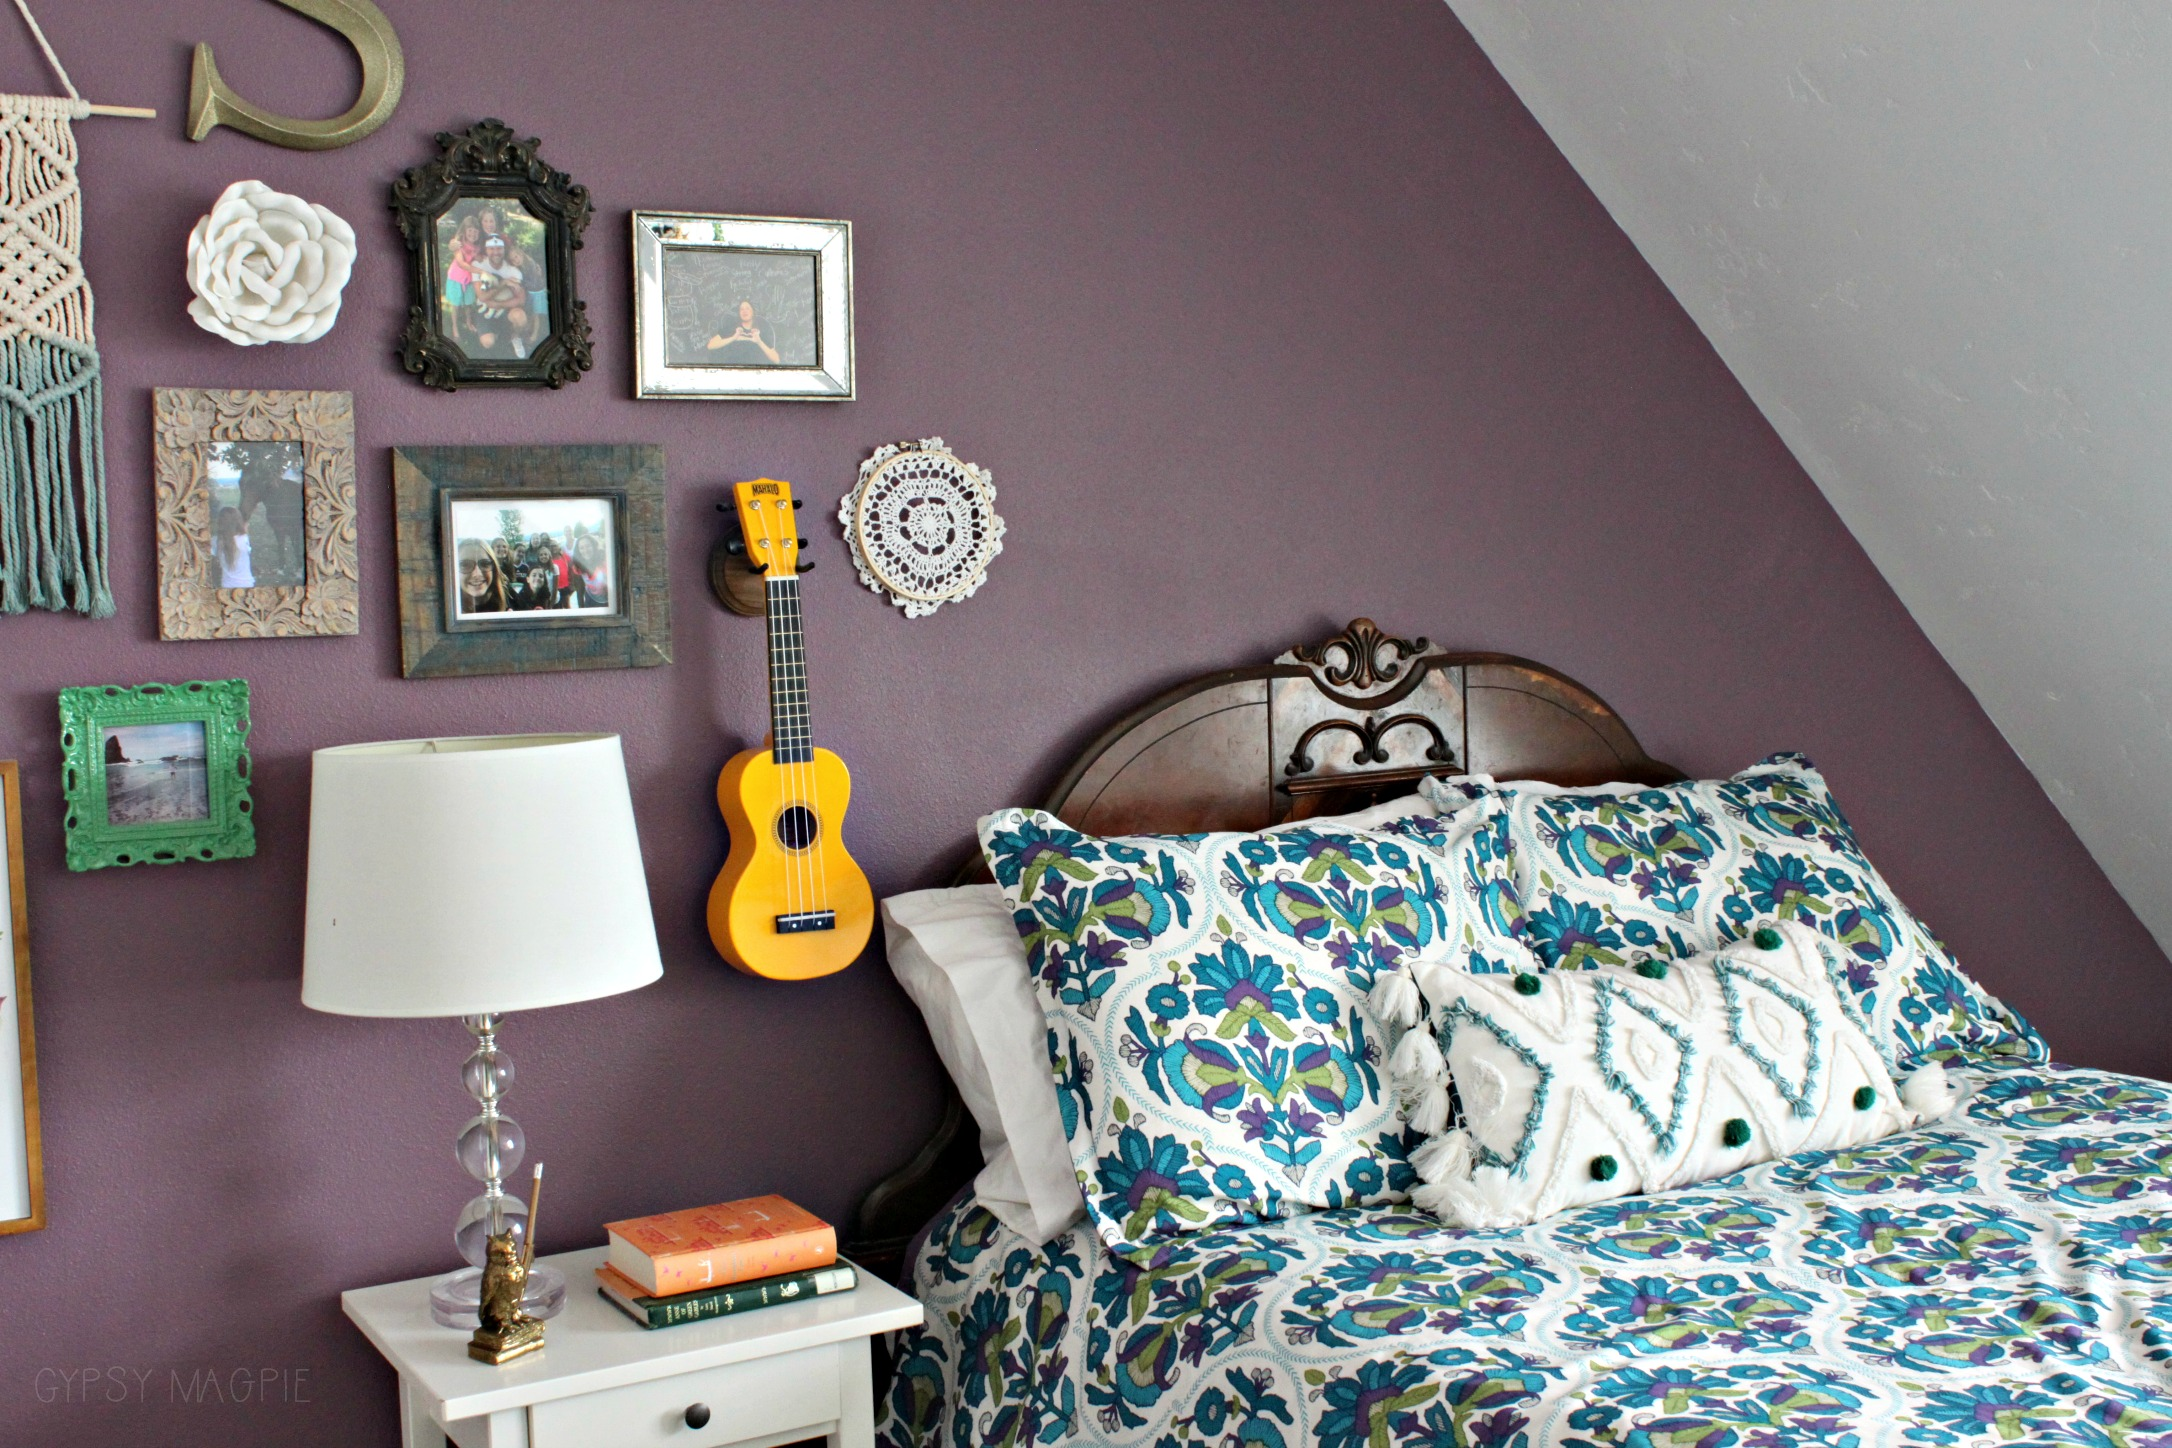 Teen boho bedroom with eclectic gallery wall | Gypsy Magpie